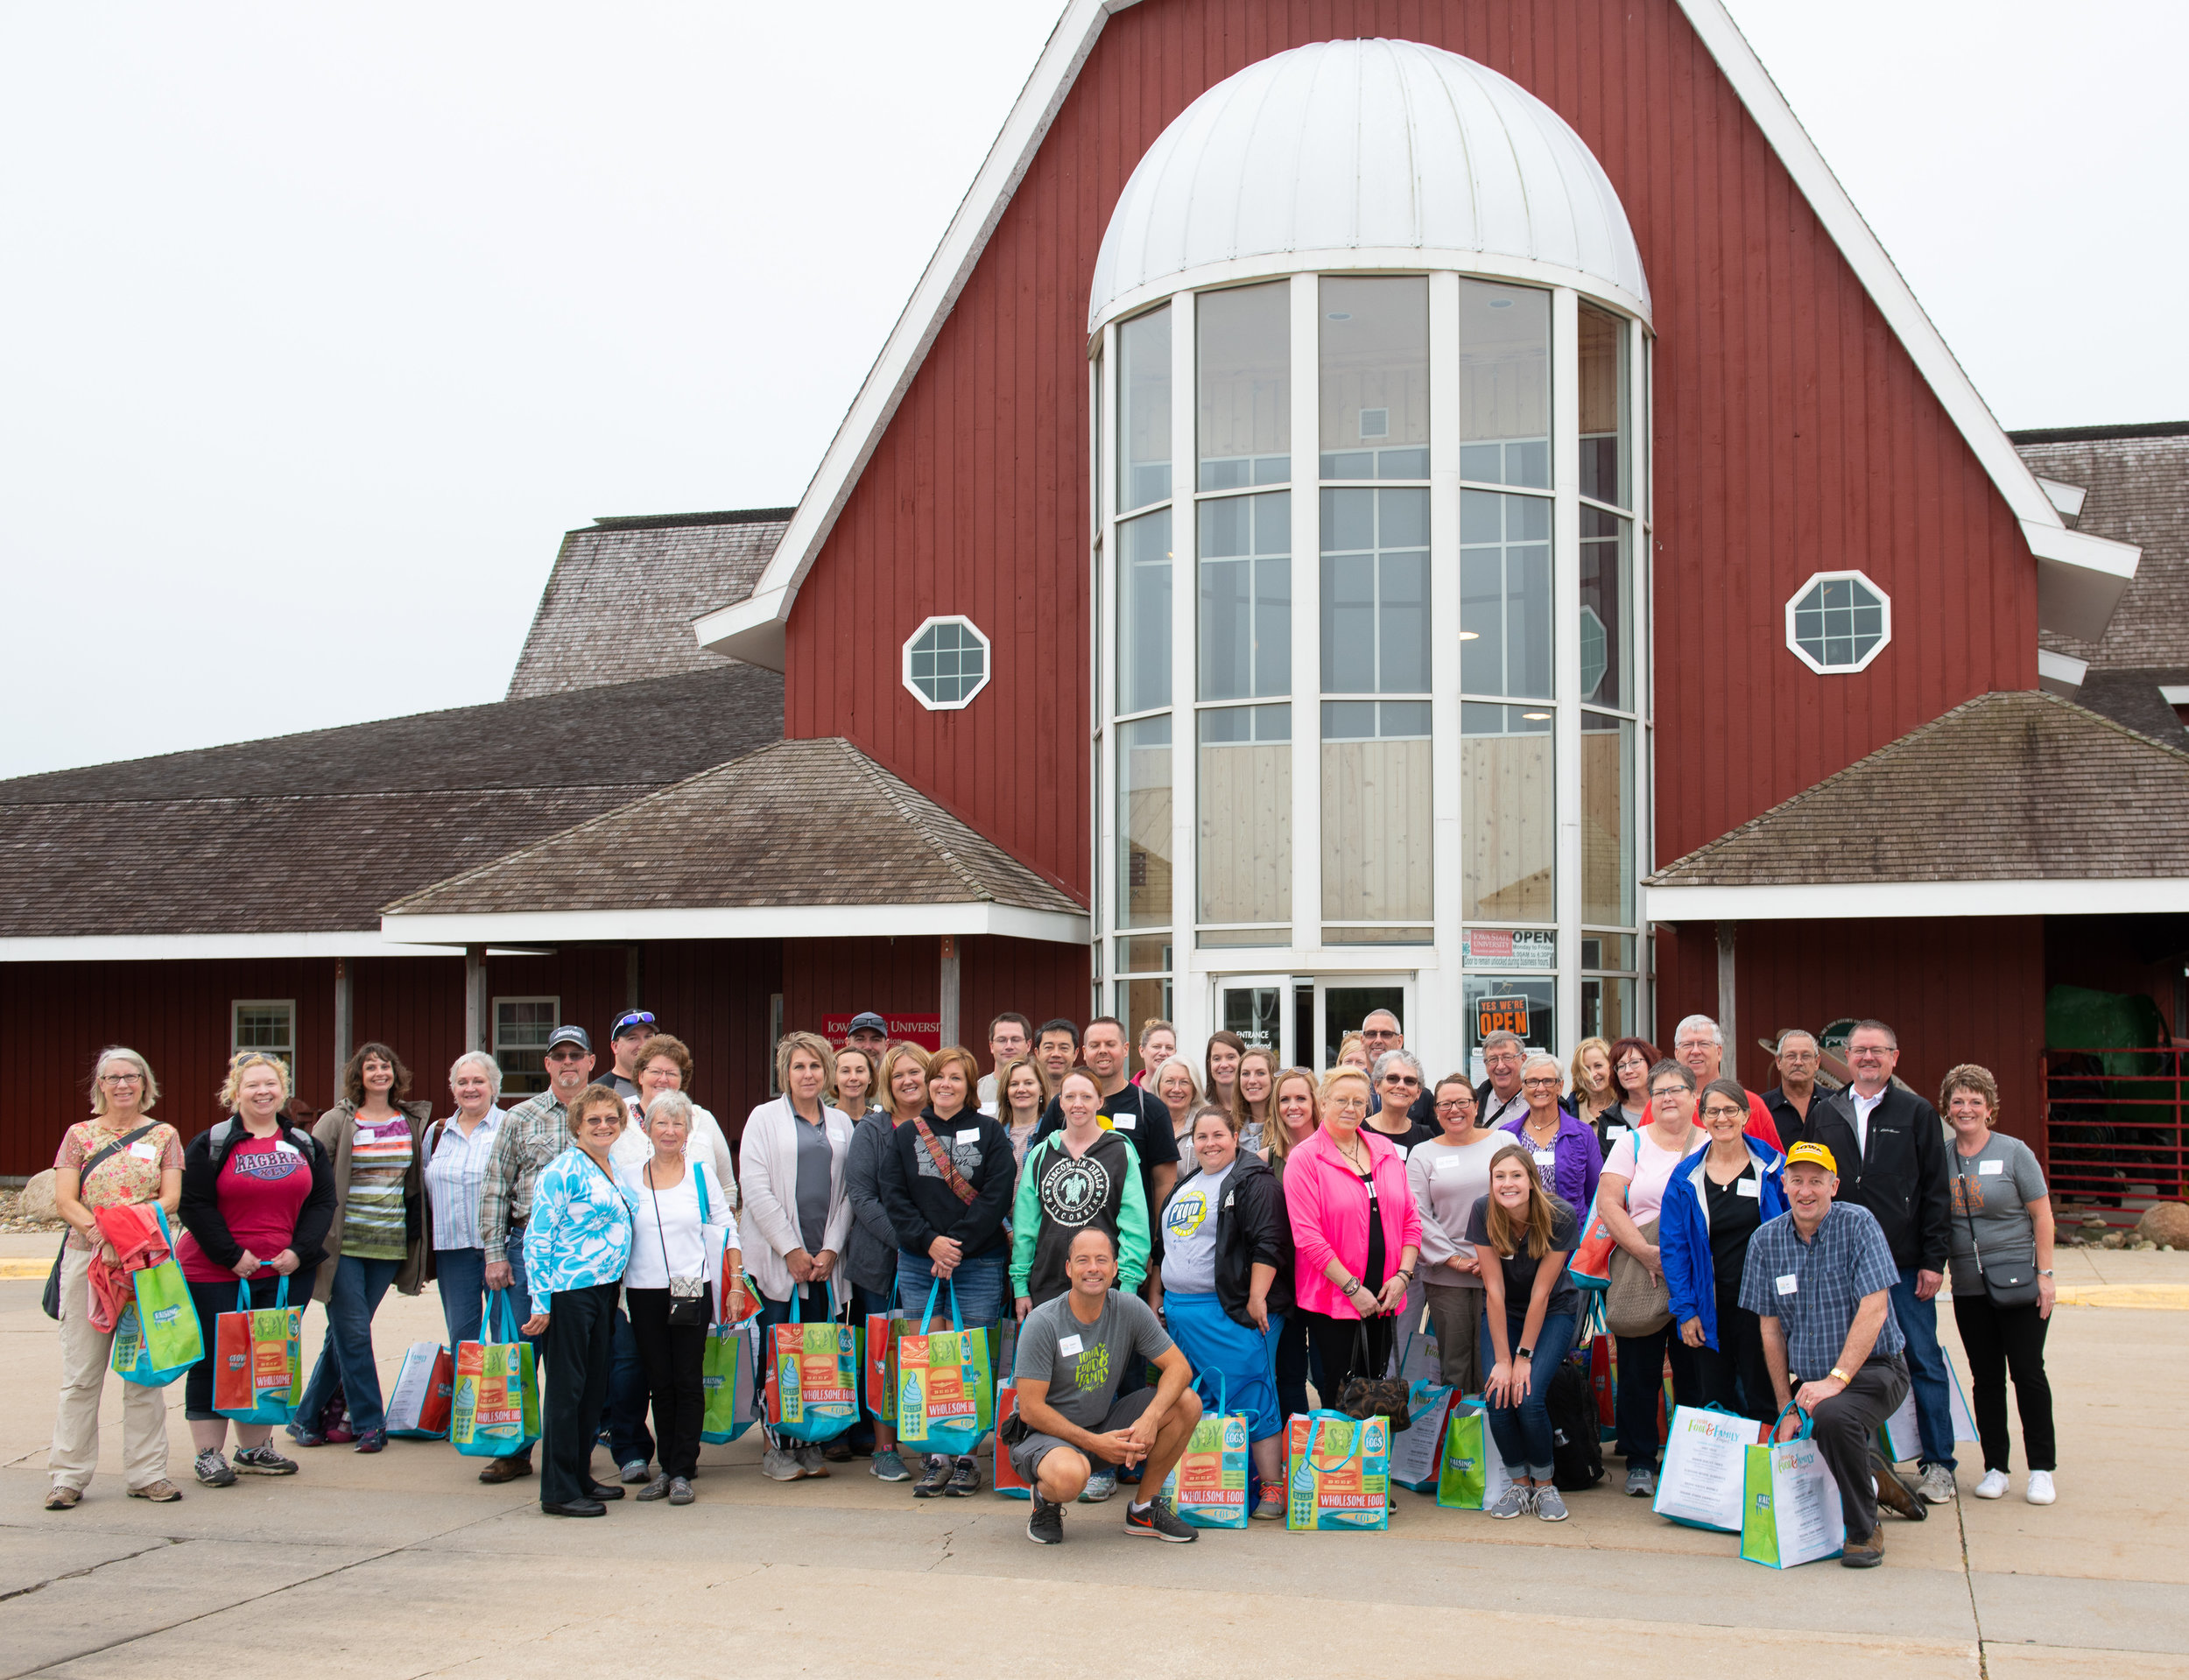 The event launched at Heartland Acres in Independence. The agribition center displays a diverse collection of agricultural tools and accomplishments. Photo credit: Joseph L. Murphy/Iowa Soybean Association